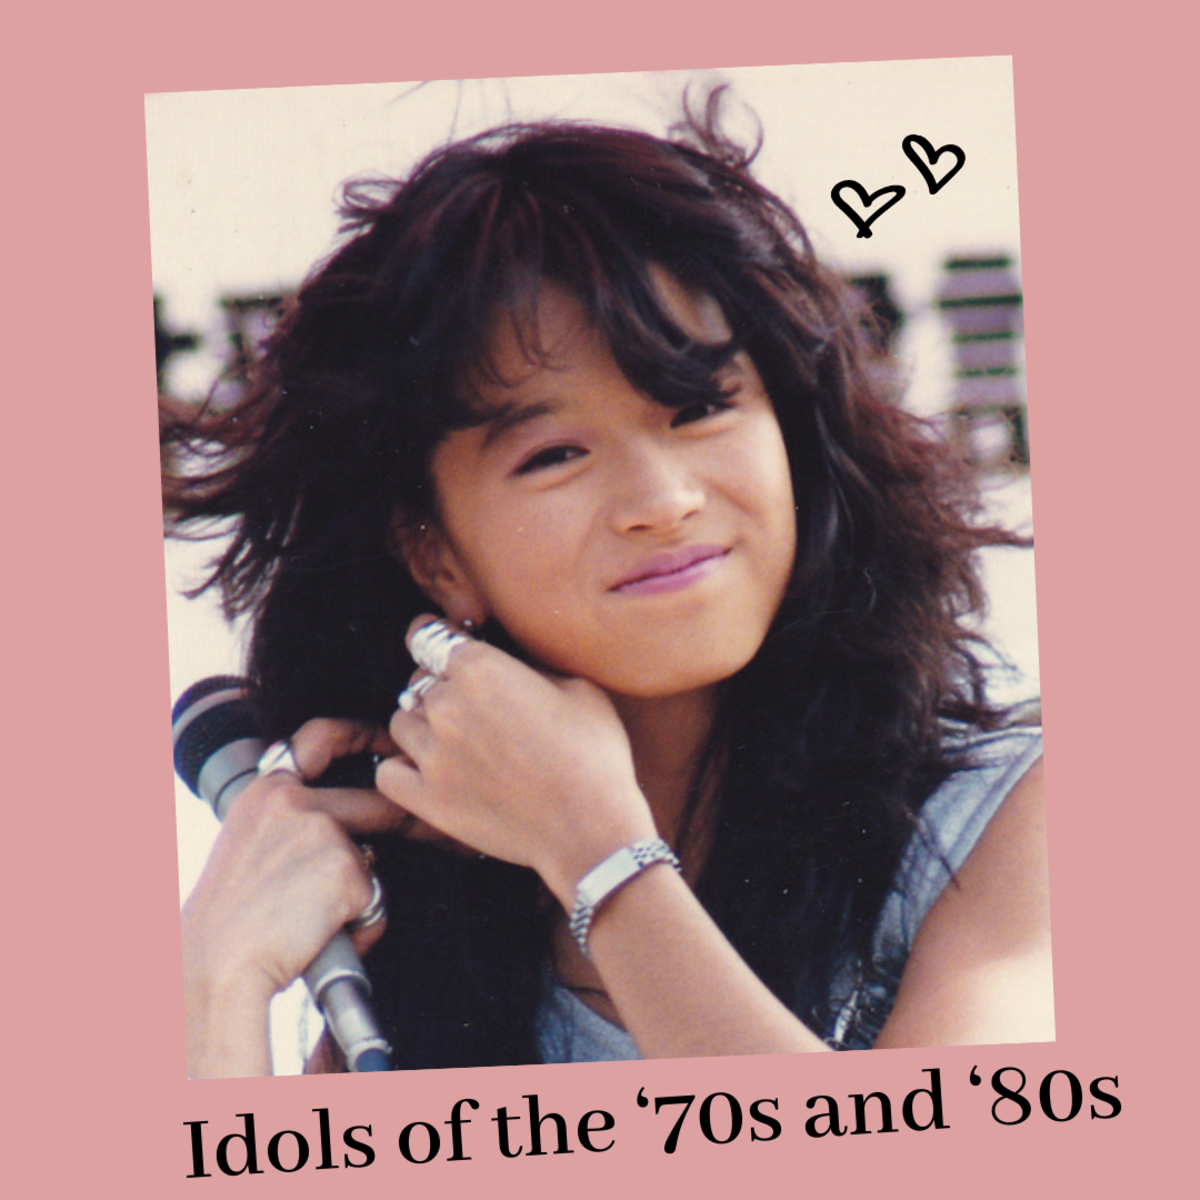 Top 10 J-pop Female Idols of the '70s and '80s